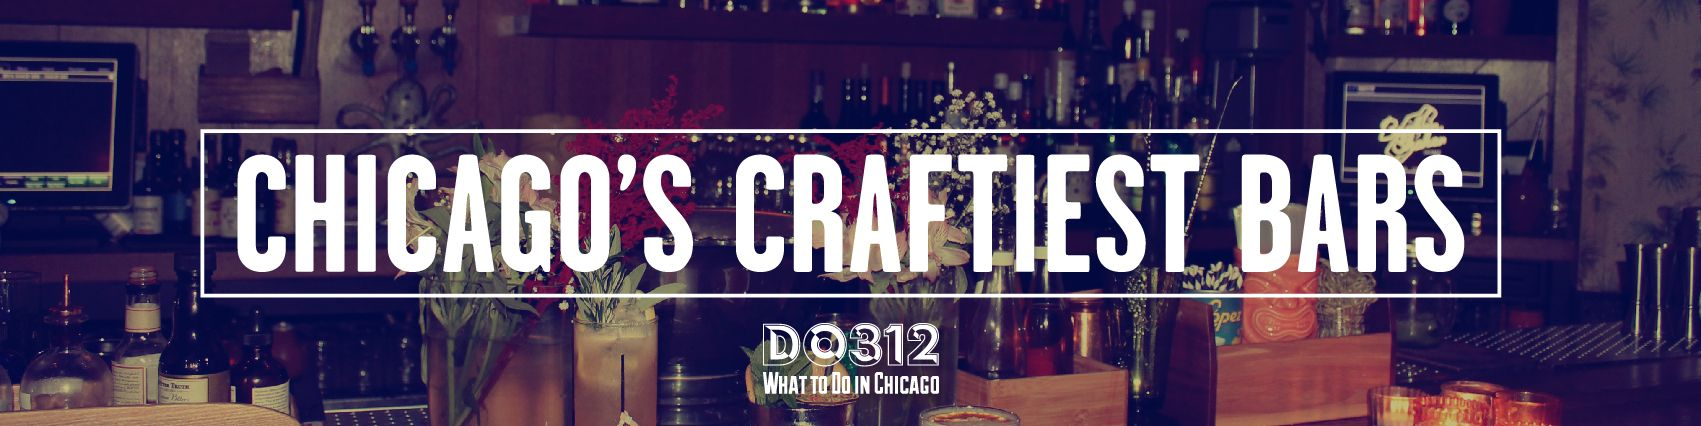 Do312_JD_CraftiestBars_MIddle Listing.jpg